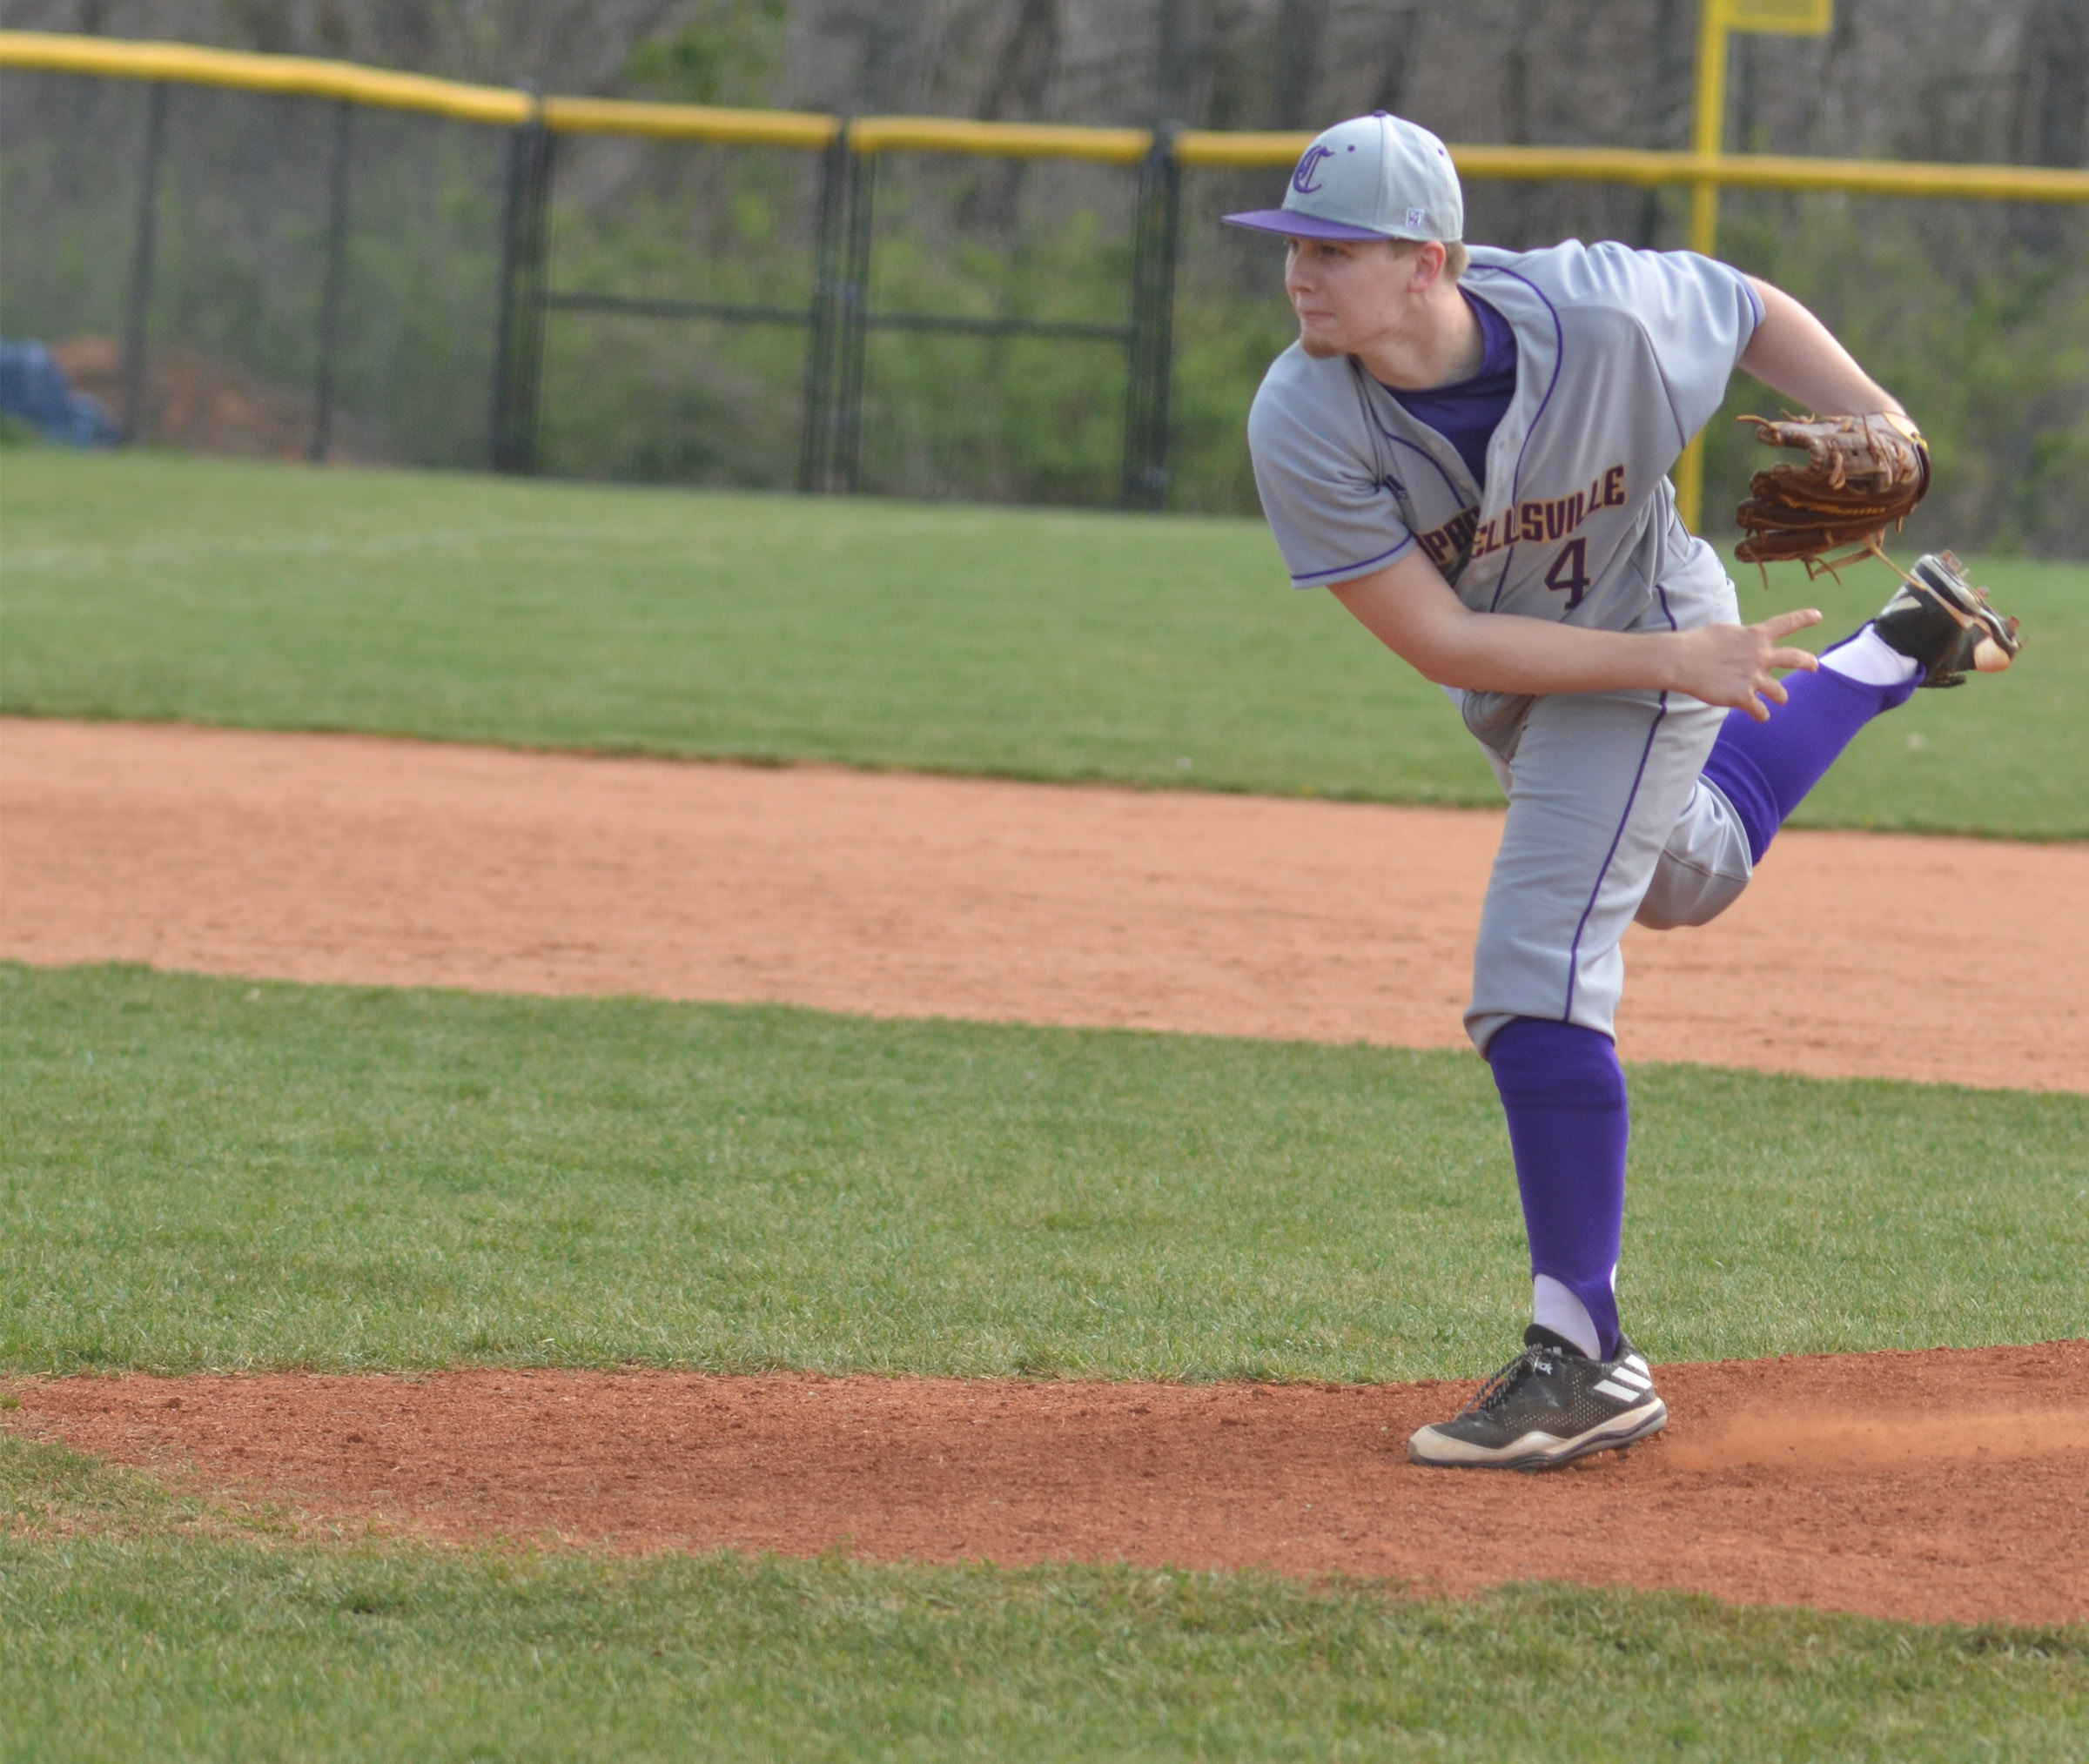 CHS junior Wyatt Houk pitches.